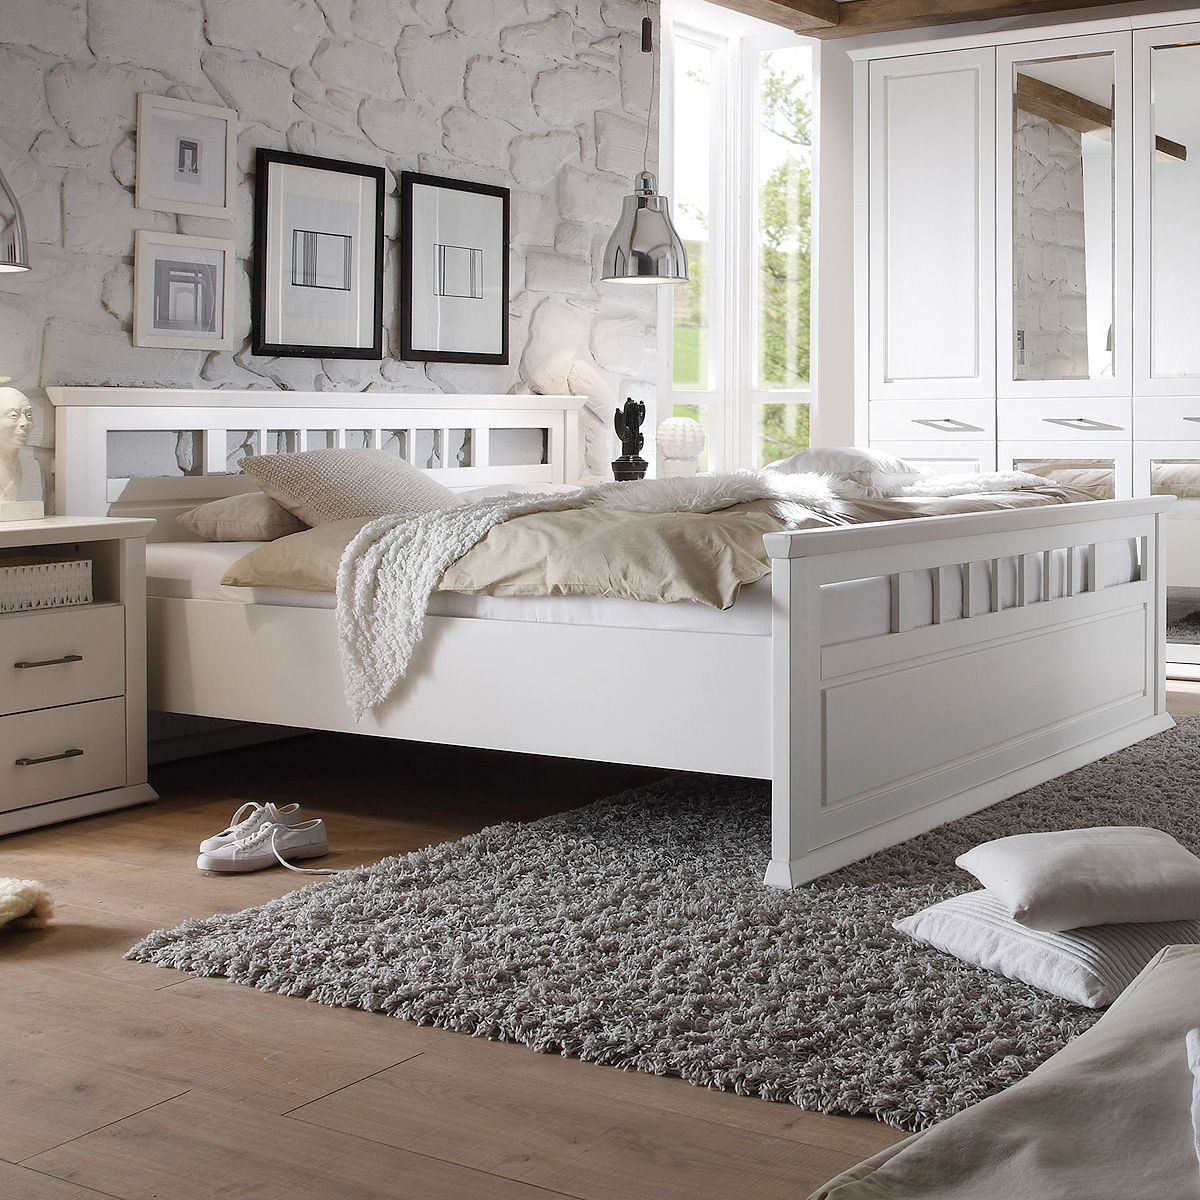 bett emma schlafzimmerbett doppelbett in kiefer teilmassiv. Black Bedroom Furniture Sets. Home Design Ideas